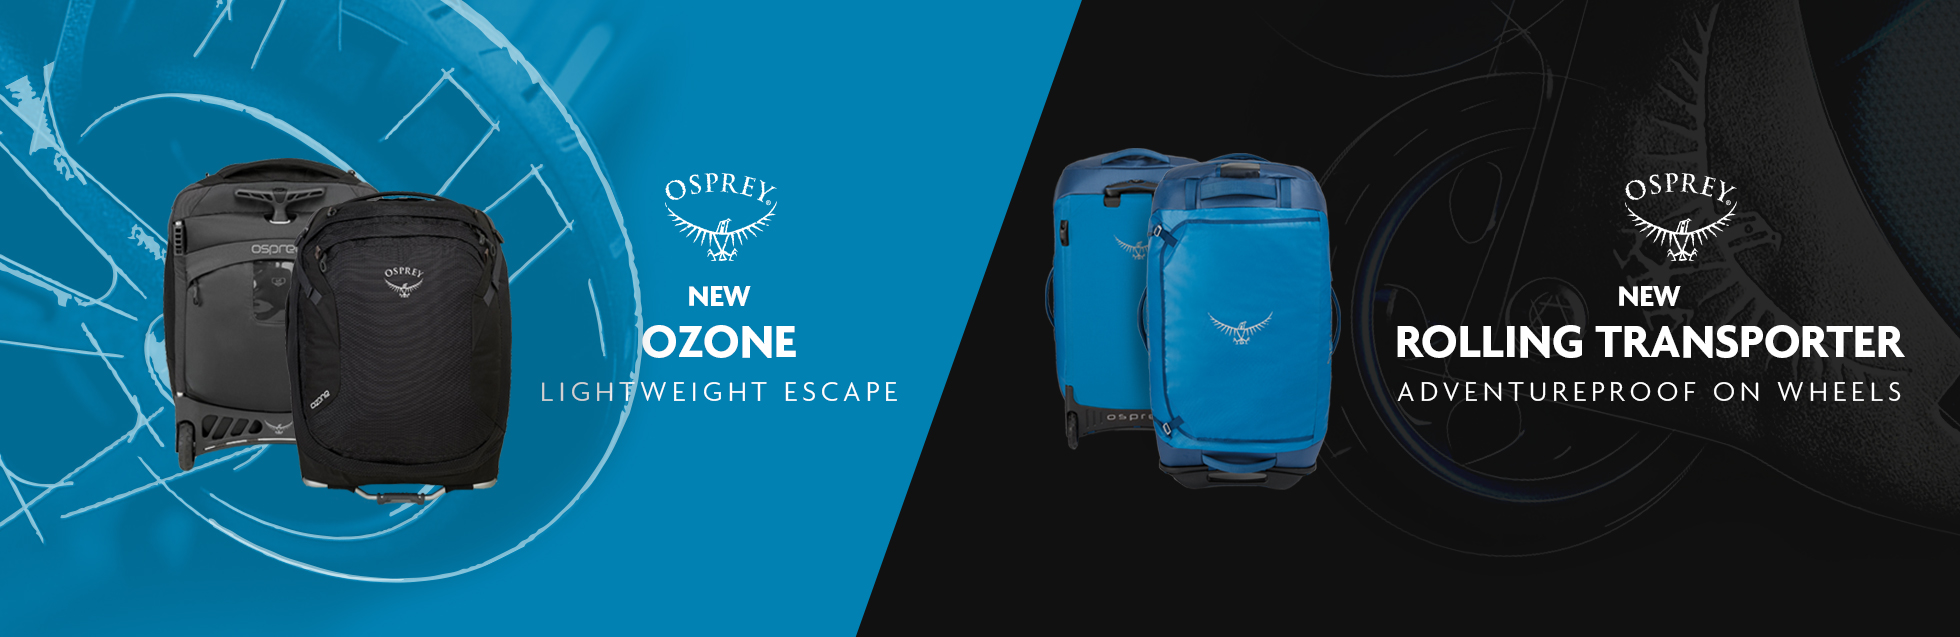 New Osprey Ozone And Rolling Transporter